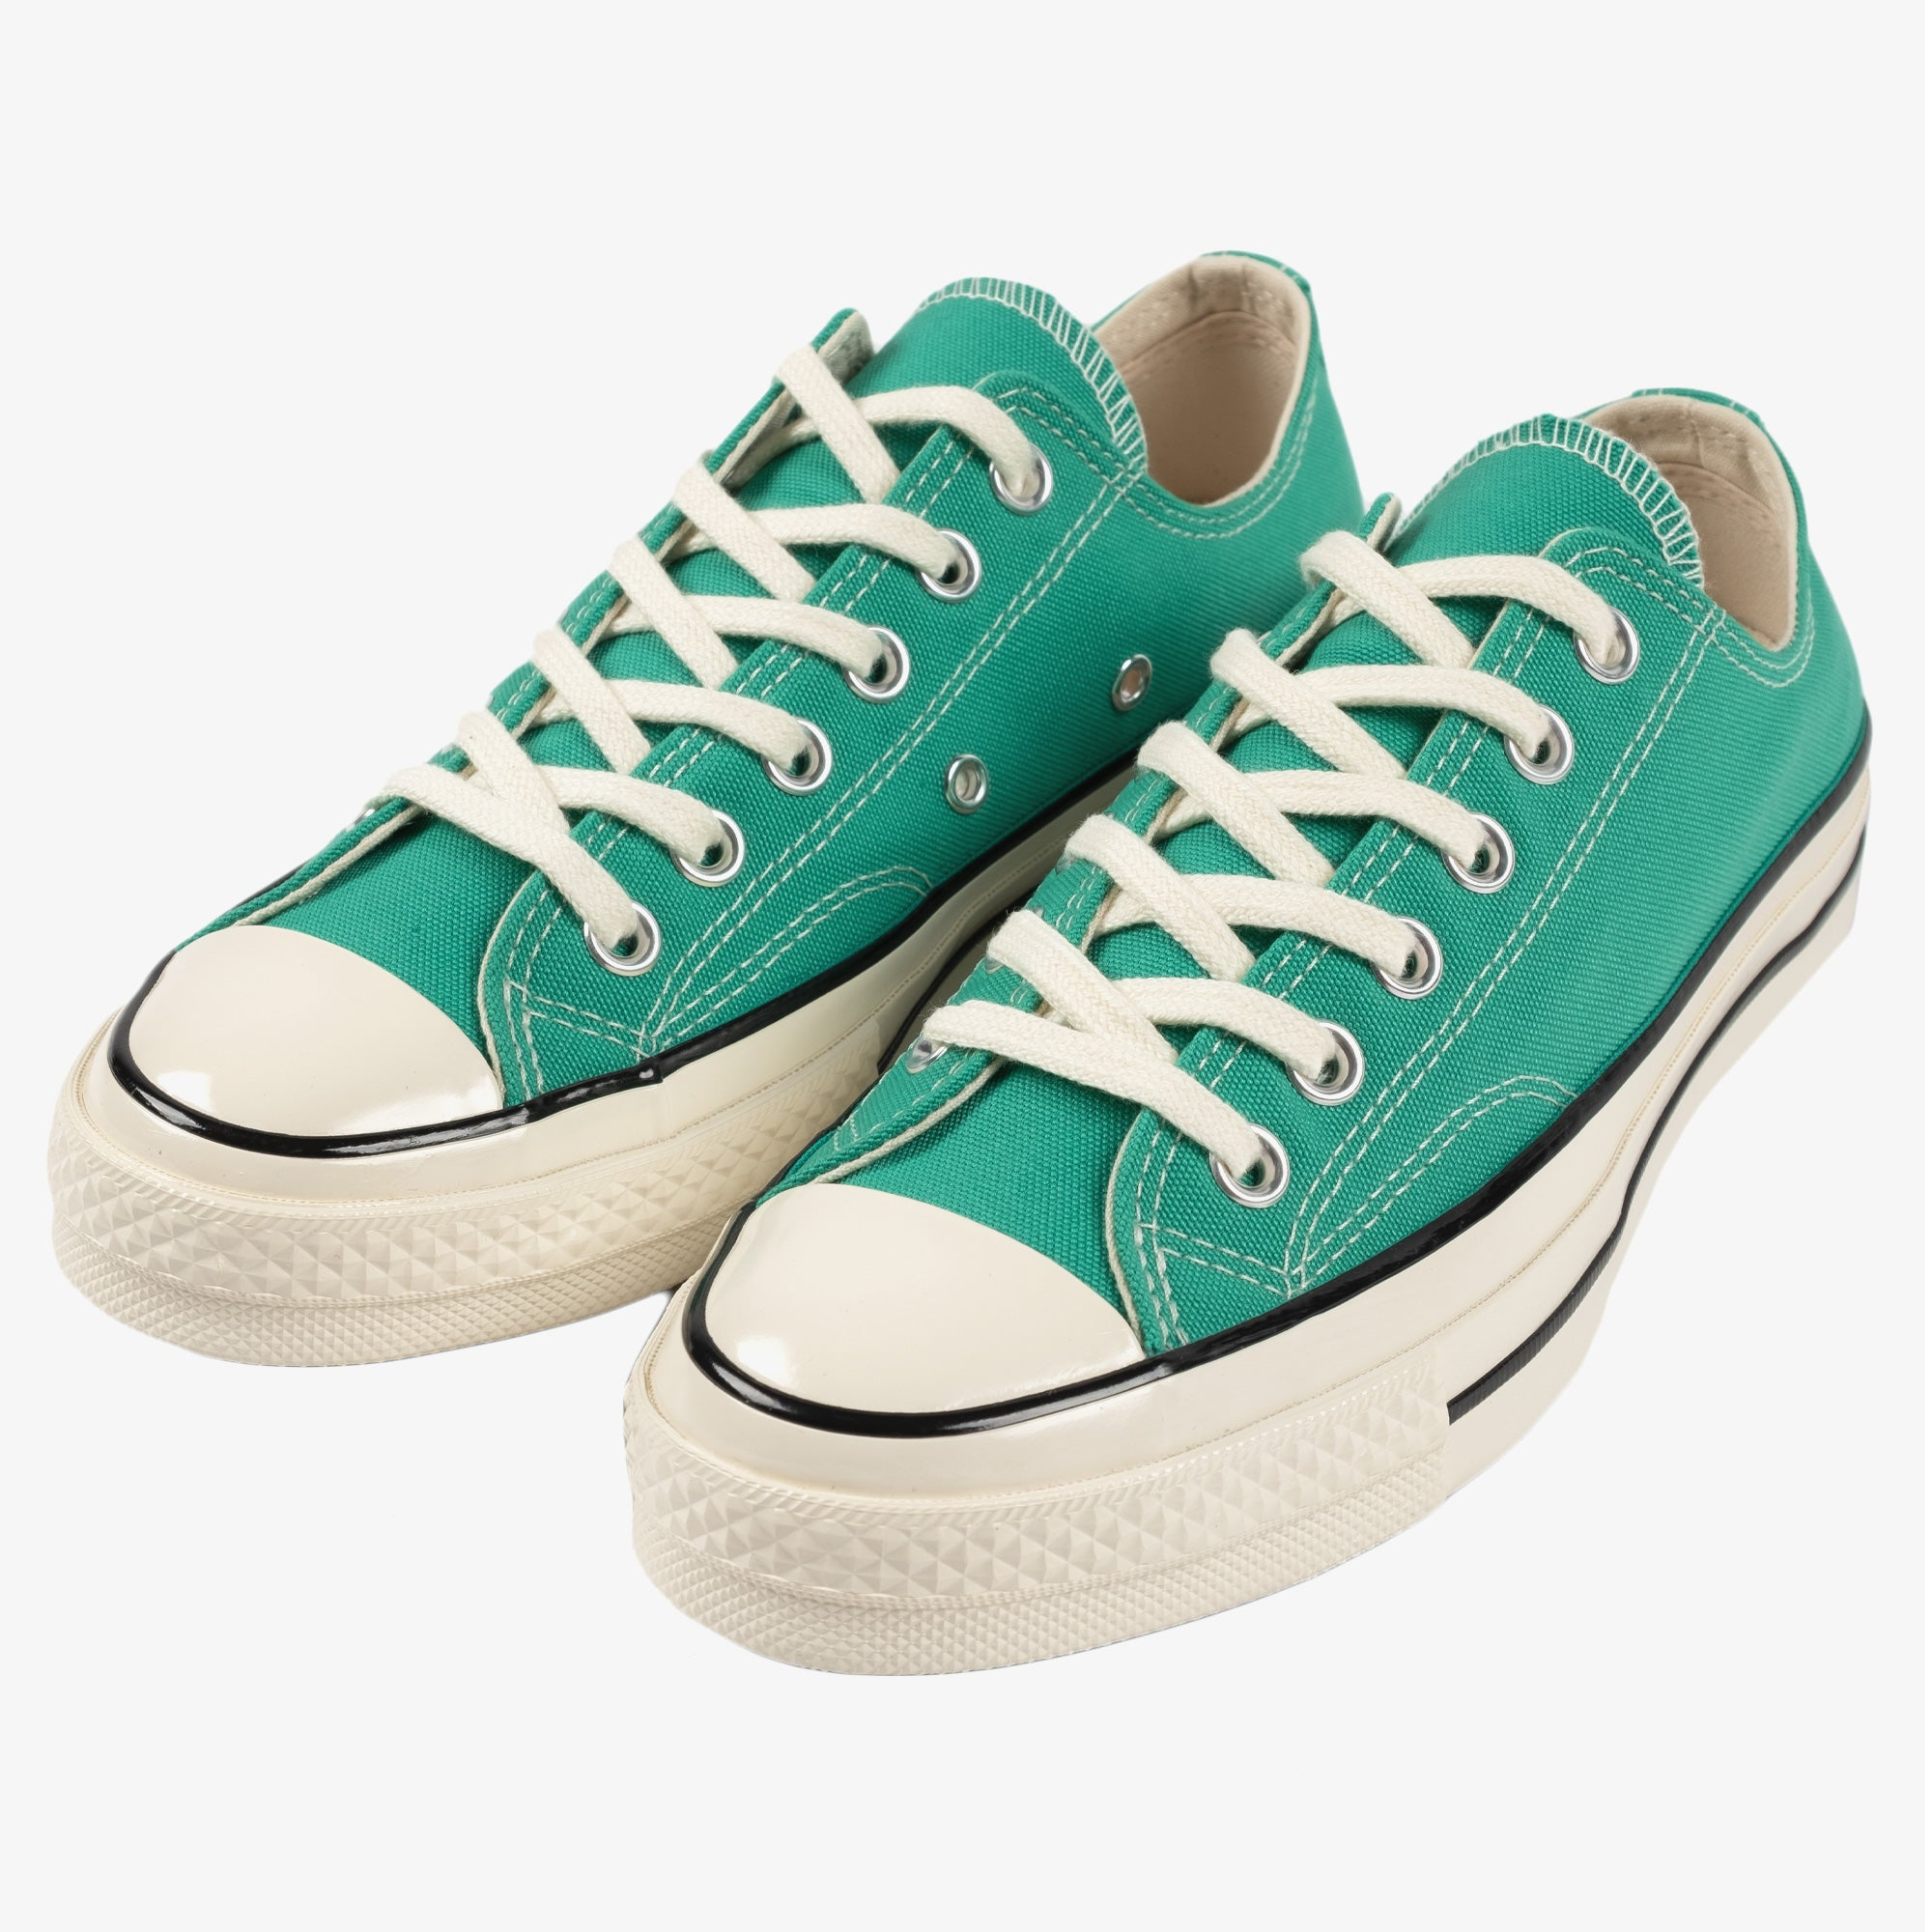 Converse Chuck Taylor 70 Low - Court Green 2